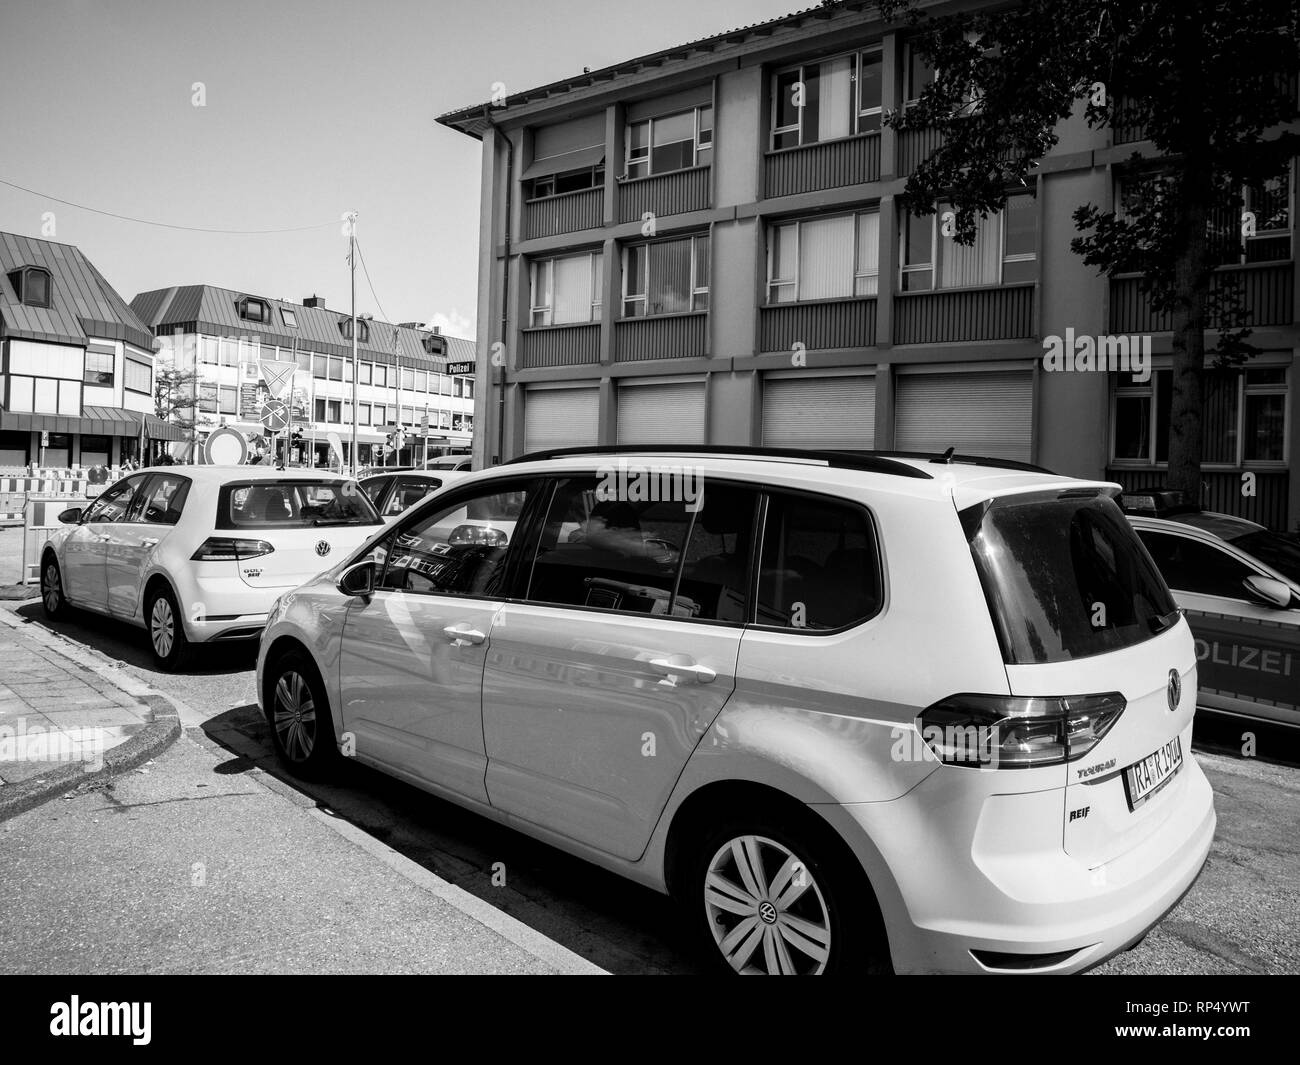 KEHL, GERMANY - SEP 1, 2017: Fleet of yellow Volkswagen Golf cars parked near construction site in German city - black and white - Stock Image